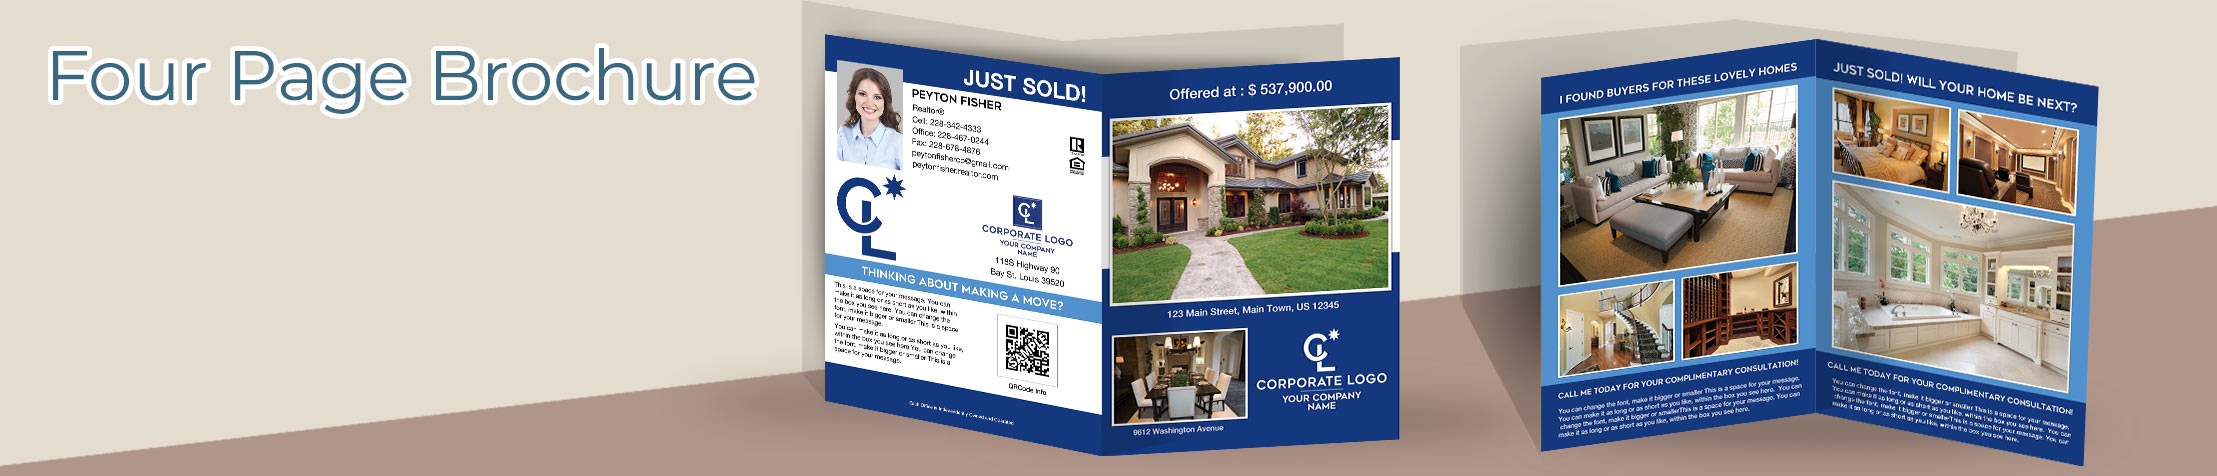 Coldwell Banker Real Estate Flyers and Brochures - Coldwell Banker four page brochure templates for open houses and marketing | BestPrintBuy.com